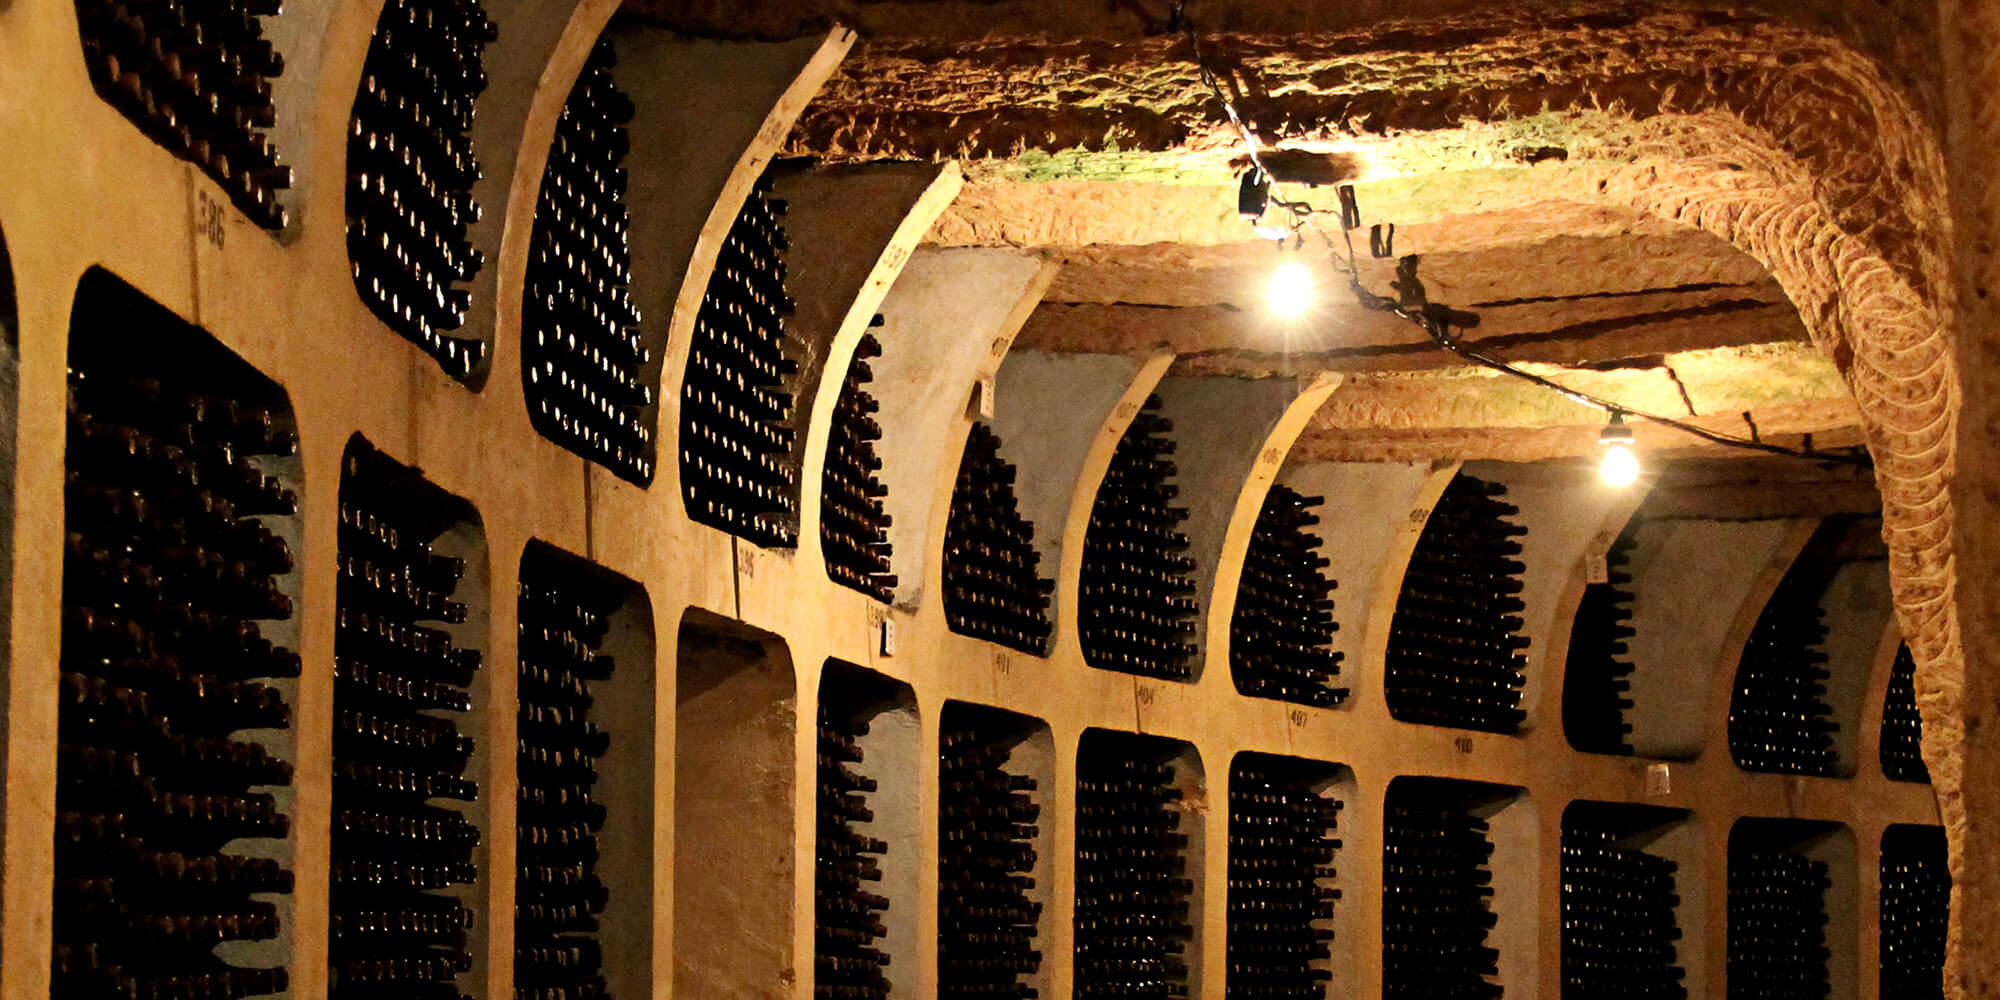 cricova cellars